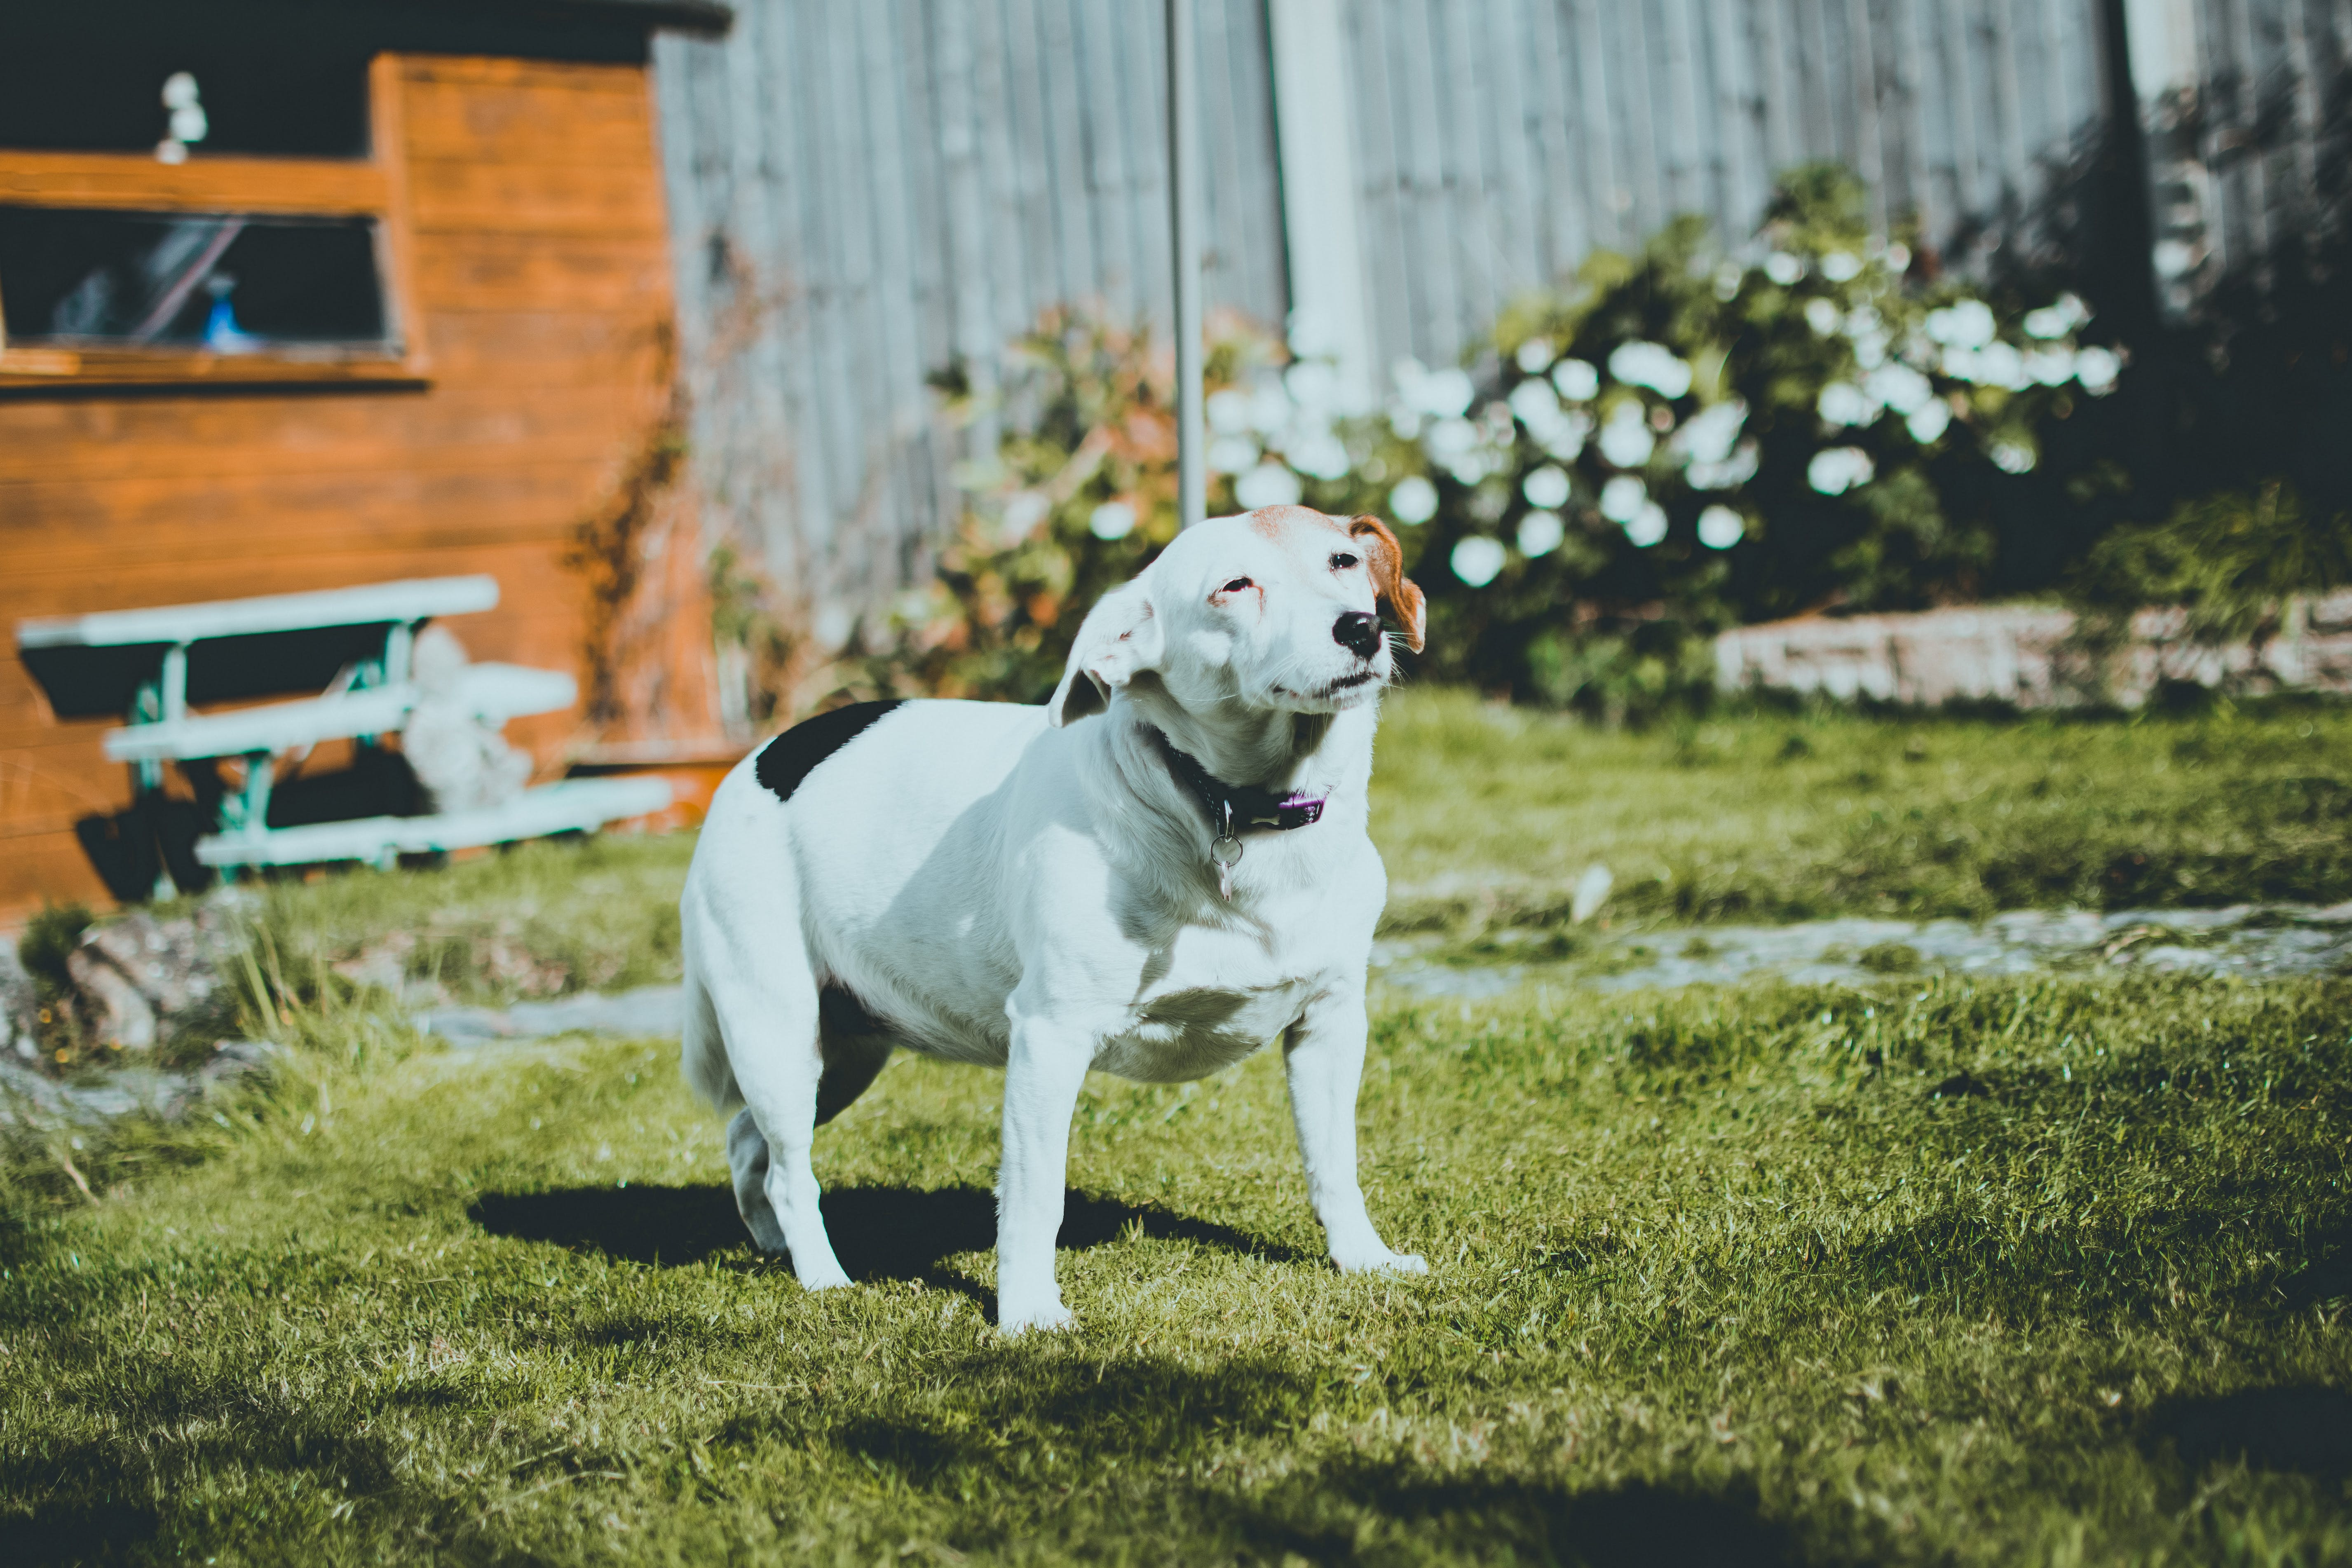 Dog Standing on Lawn Grass